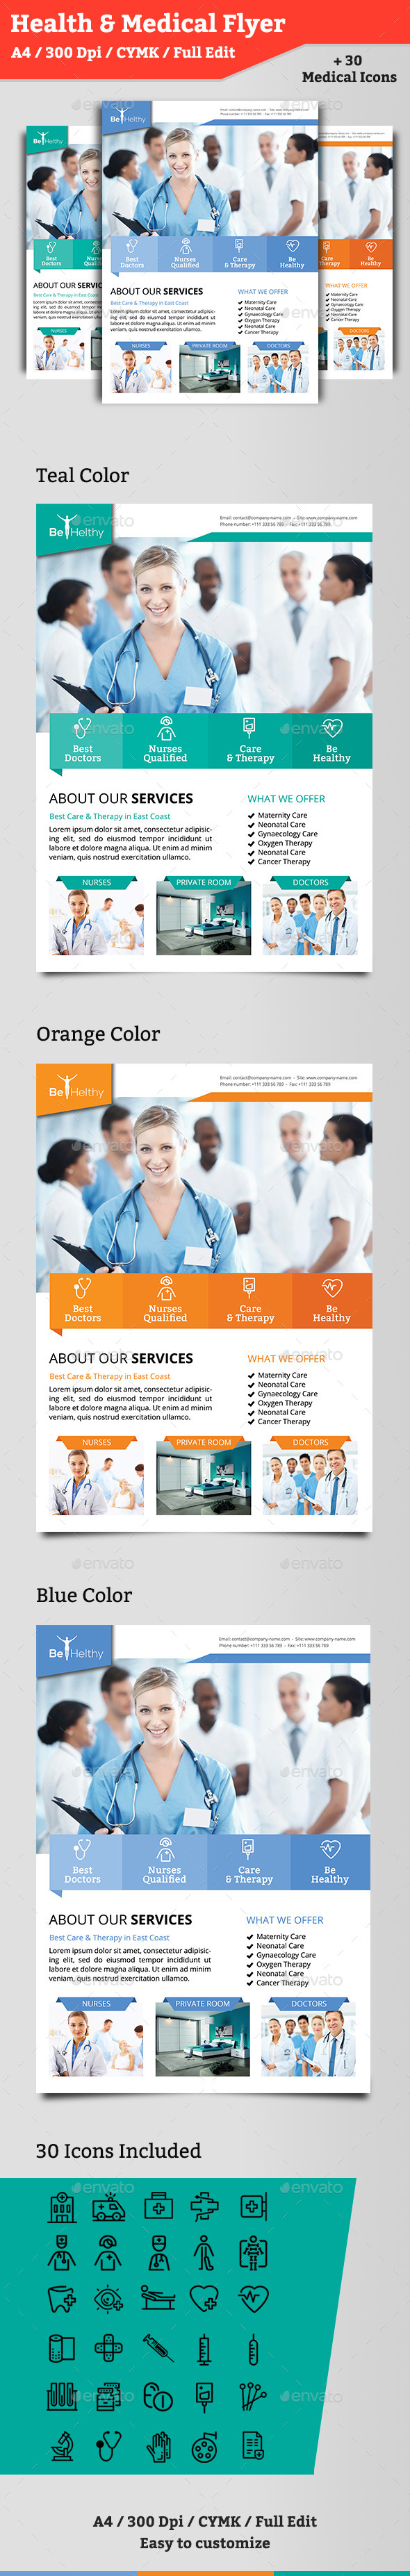 Health Flyer - Corporate Flyers